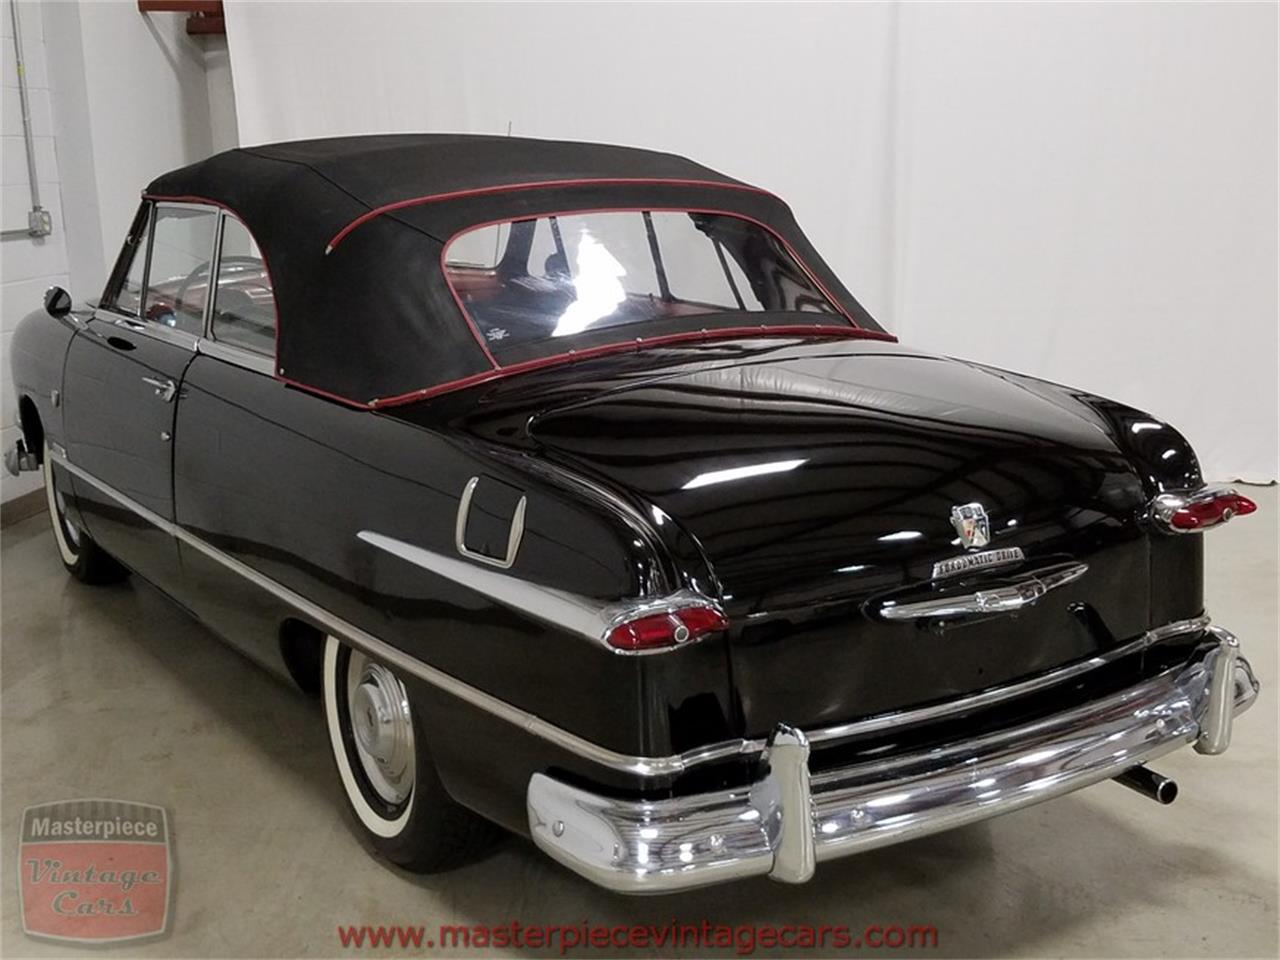 Large Picture of Classic '51 Ford Convertible located in Indiana - $39,900.00 Offered by Masterpiece Vintage Cars - KAMX